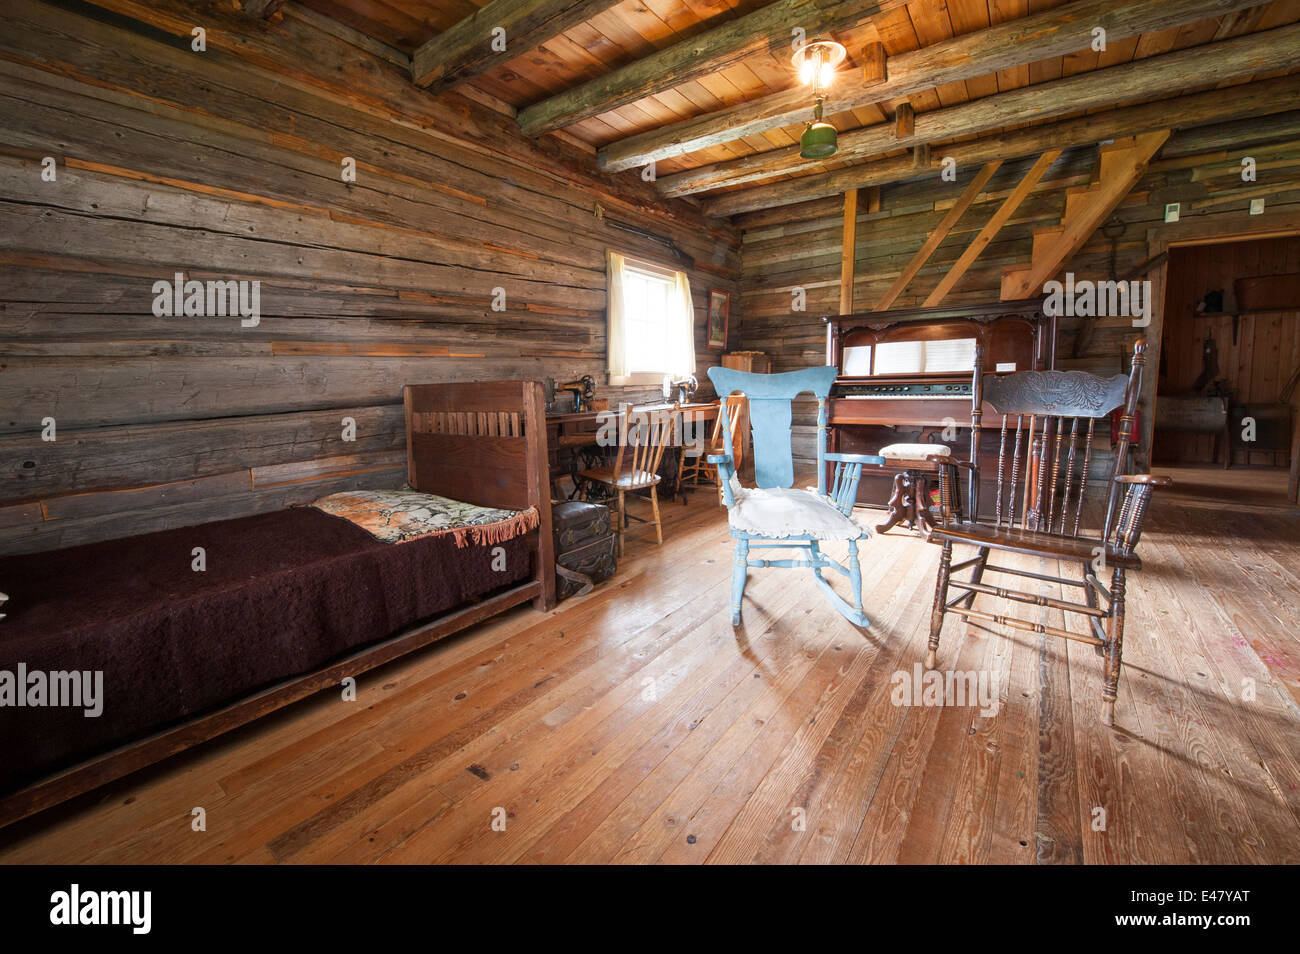 Interior room furniture log cabin building house heritage for Log cabin furniture canada